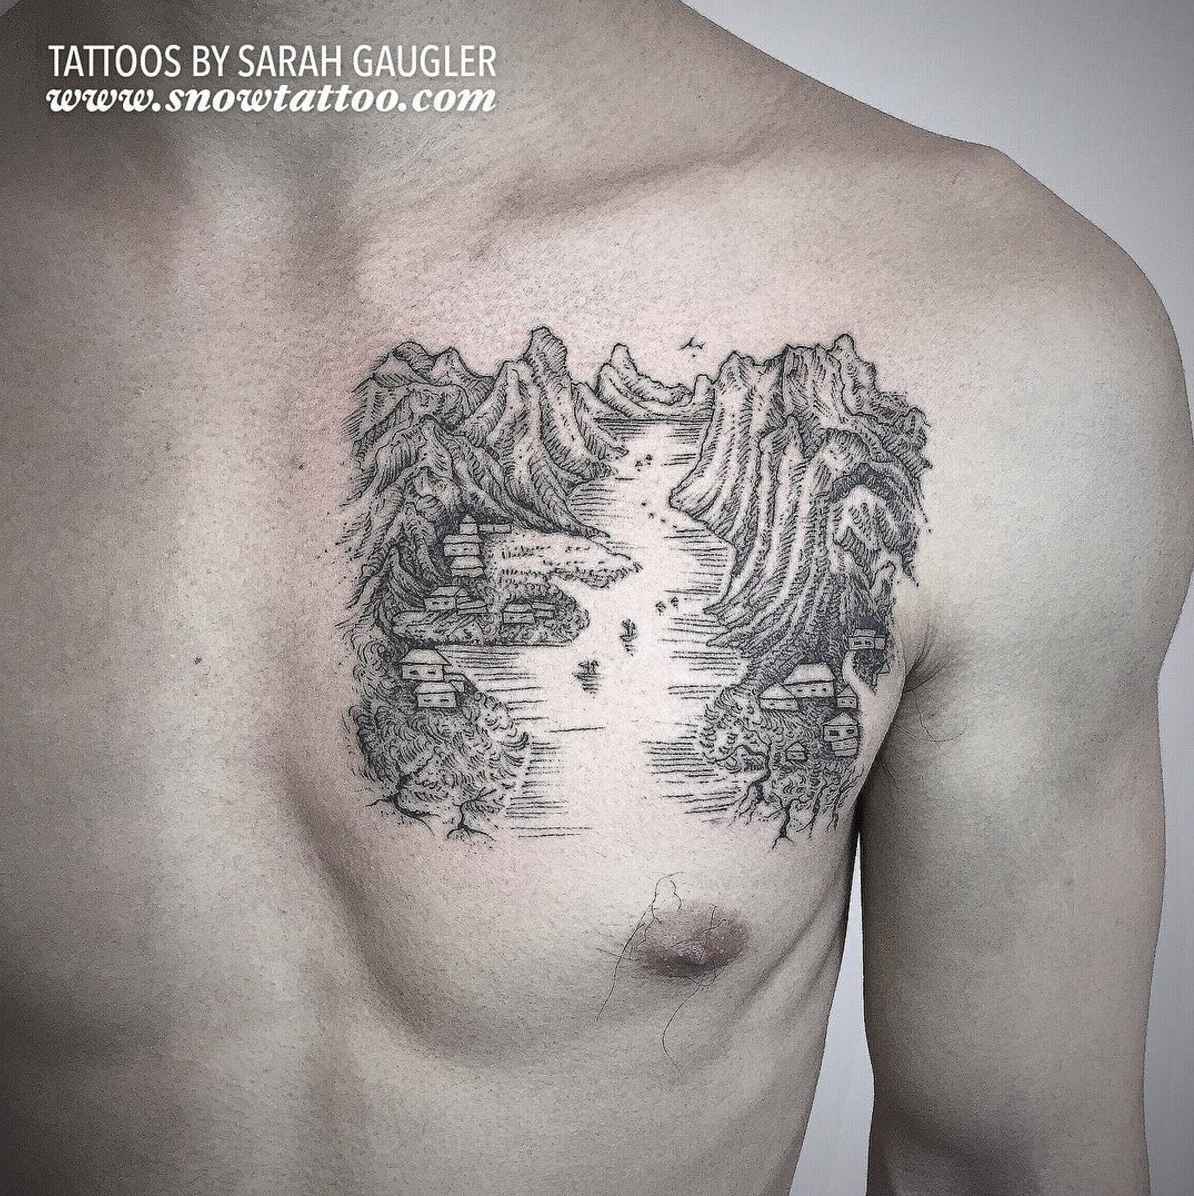 Cusotm+Chinese_Painting+Tattoo+Line+Art+Original+Flash+Tattoo+by+Sarah+Gaugler+at+Snow+Tattoo+New+York+NYC.jpg